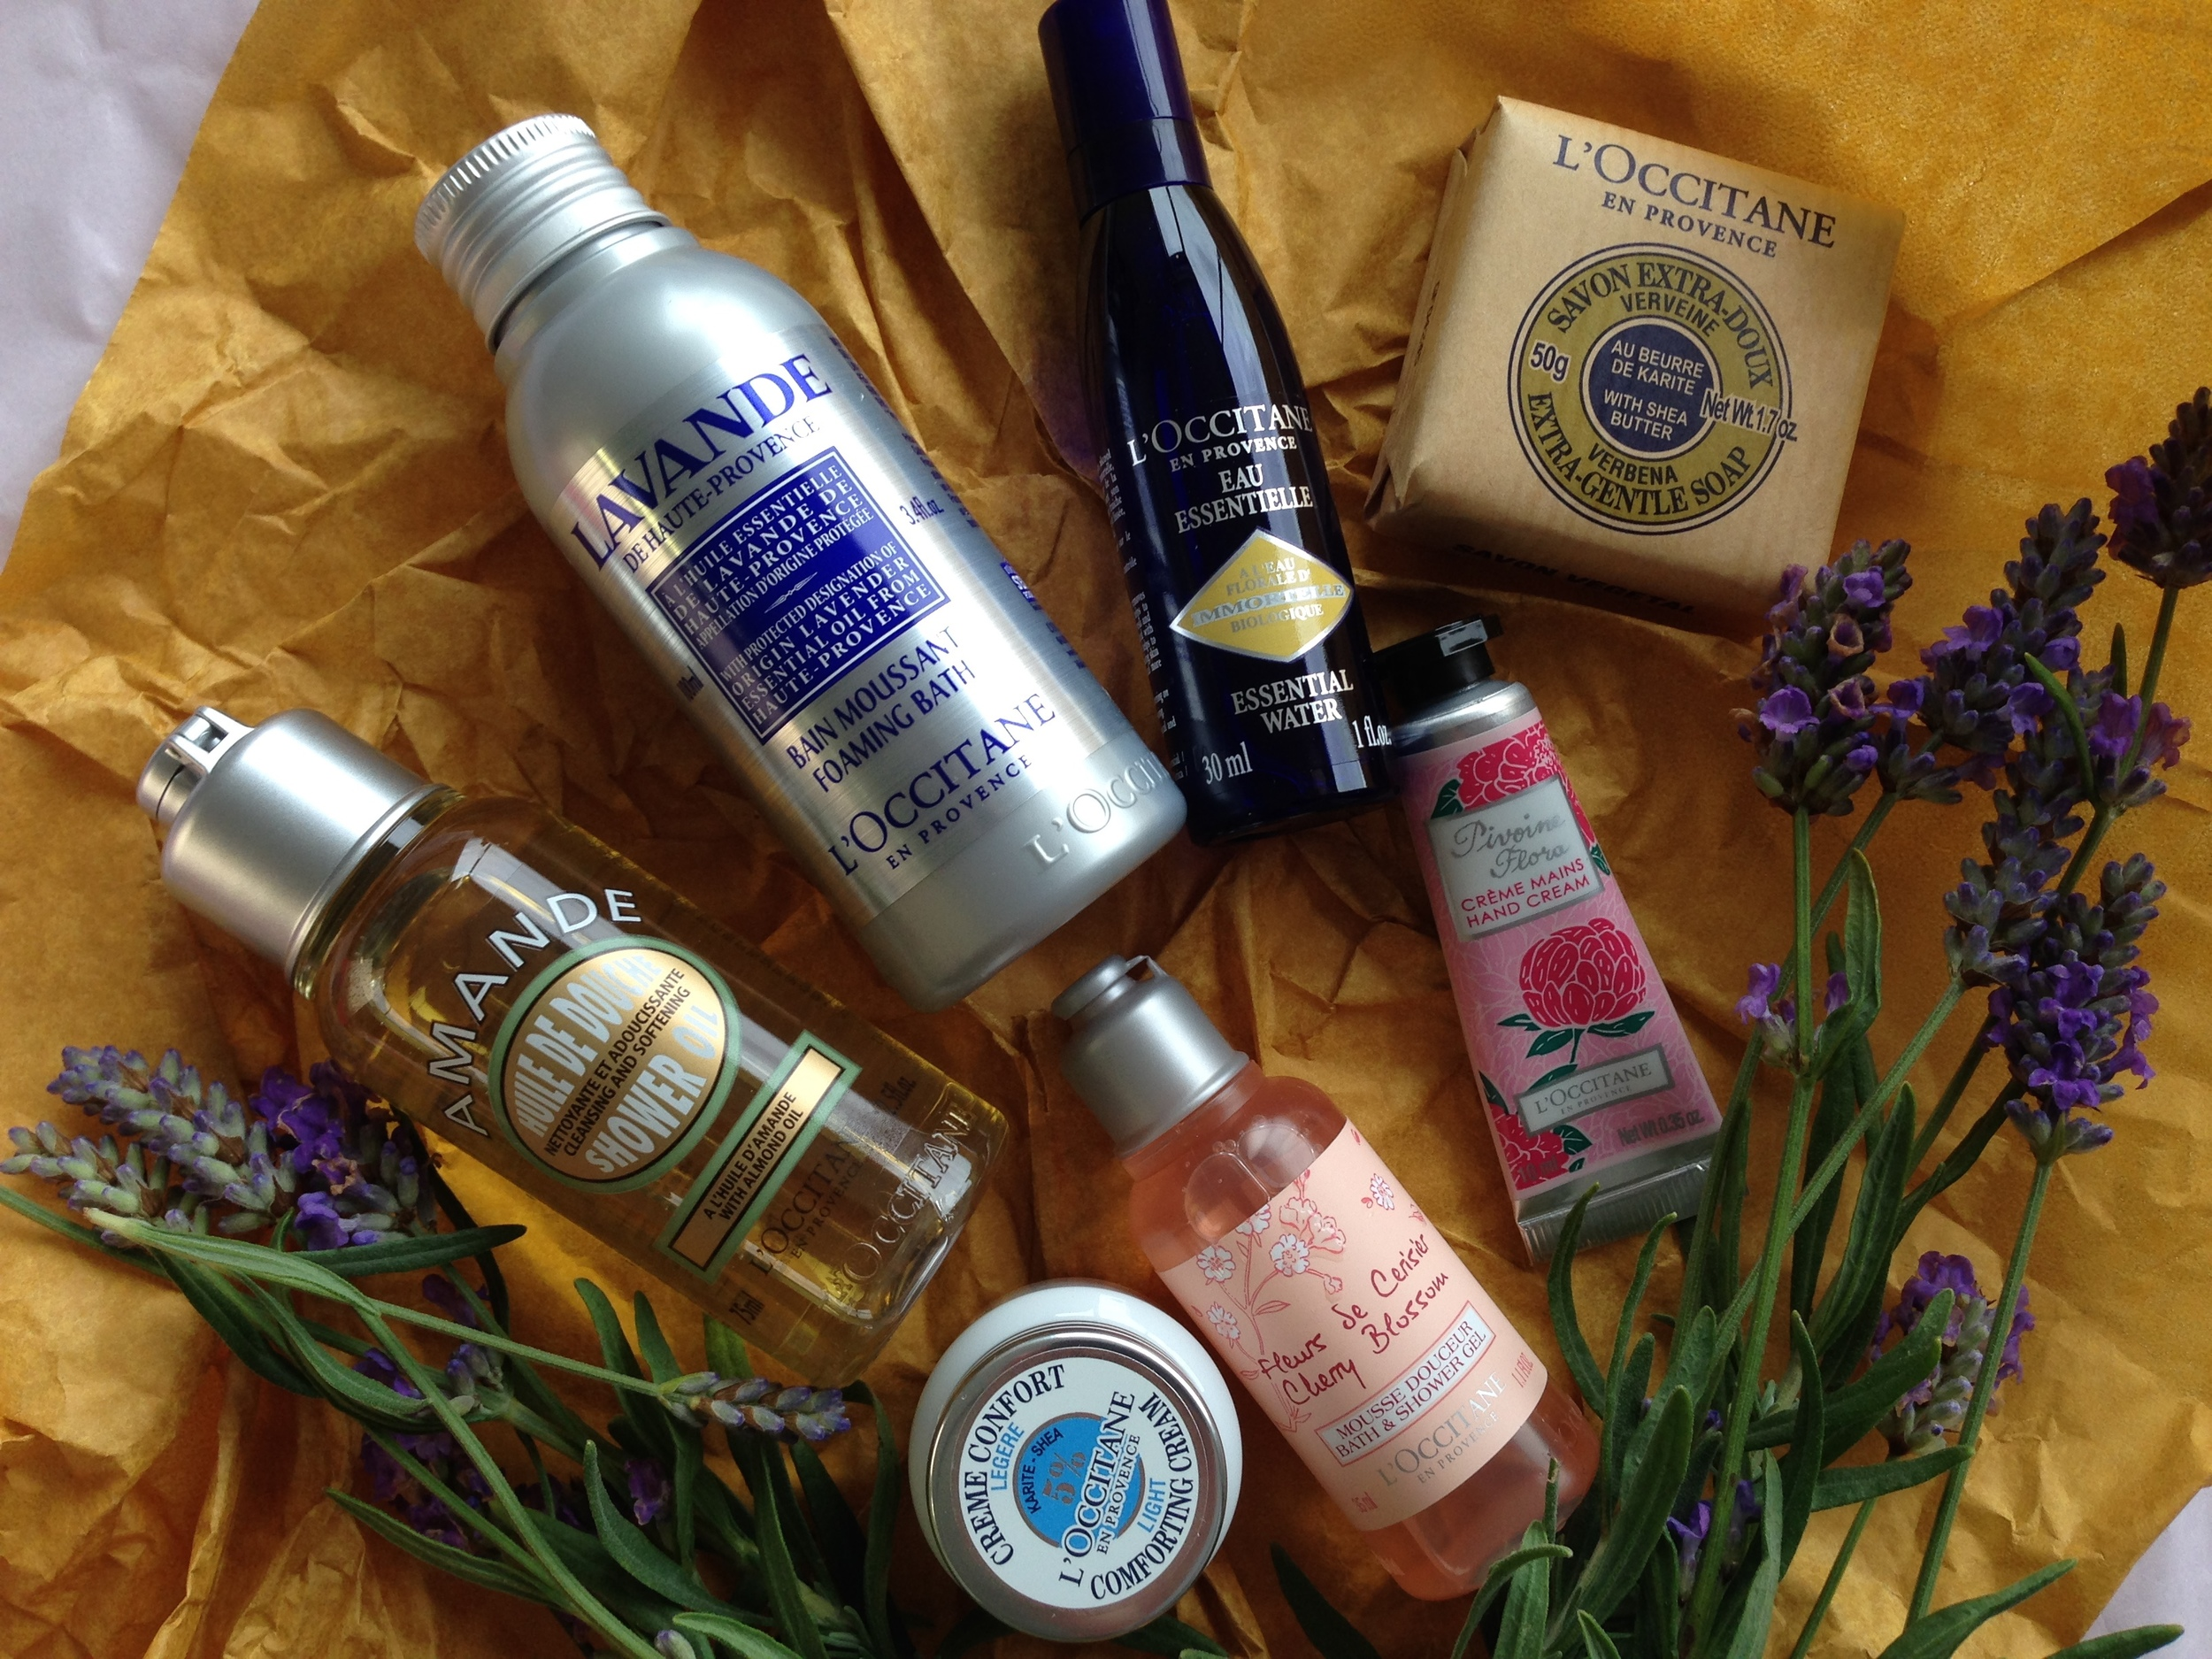 Holiday Essentials Kit contains travel sizes of some of L'Occitane's most popular products.